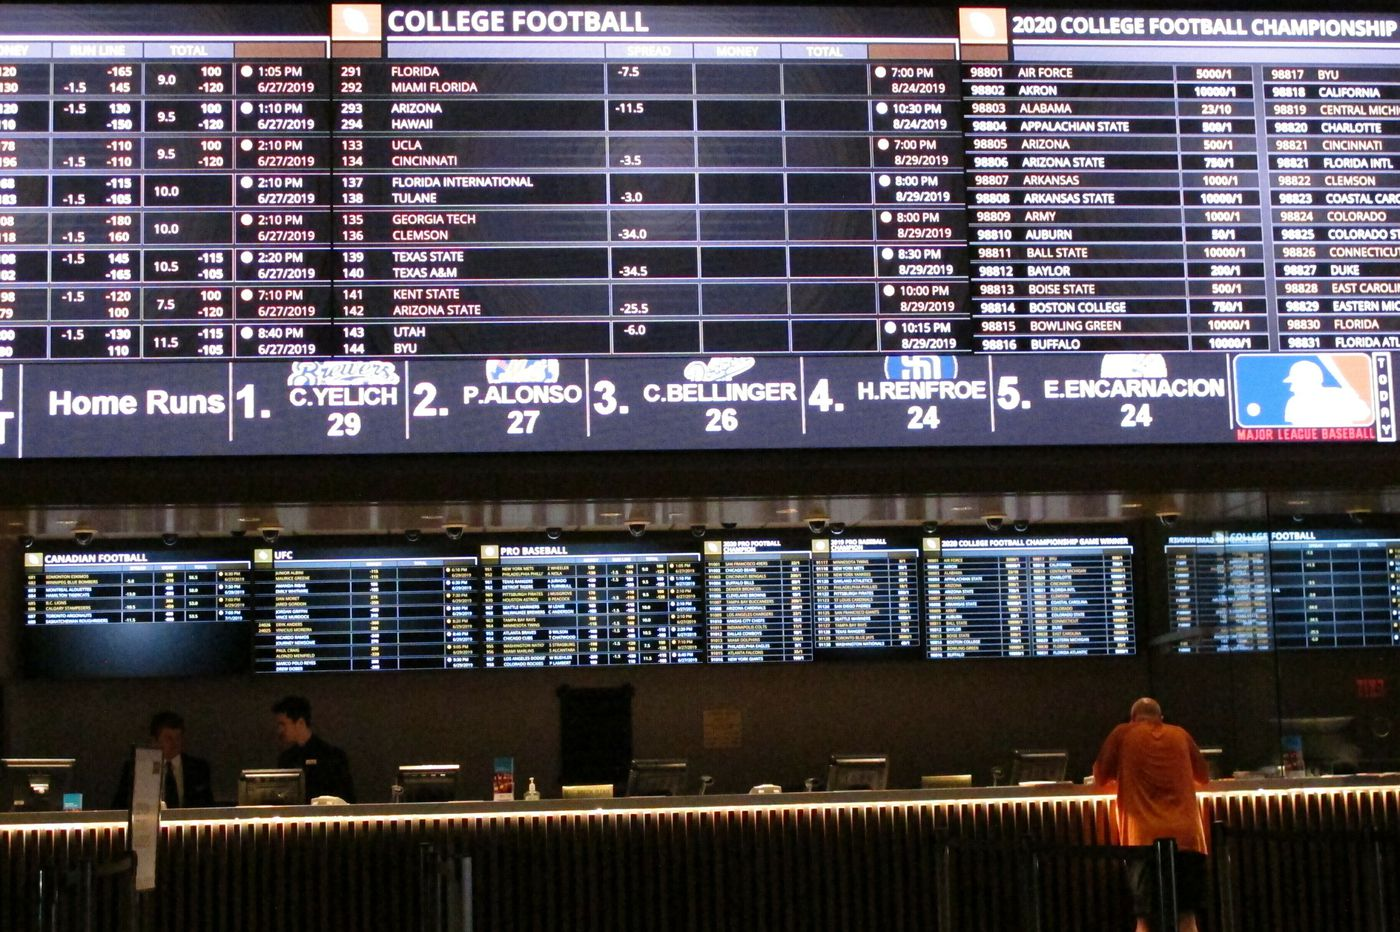 Sportsbooks and coronavirus cancellations: It's gonna be ugly